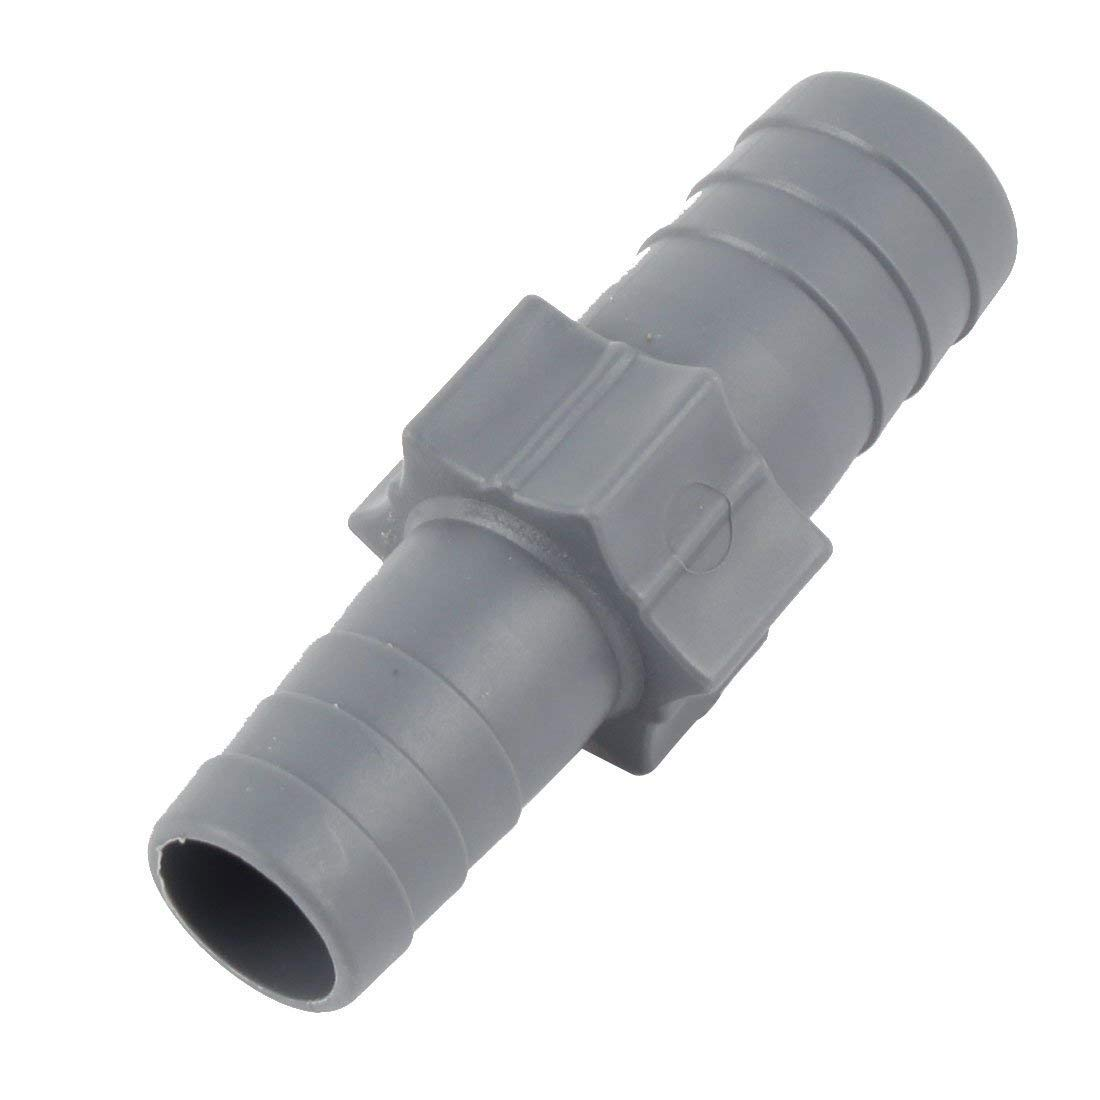 1Pc Aquarium Plastic Straight Tube Joiner Hose Pipe Fitting Adapter Connector Grey